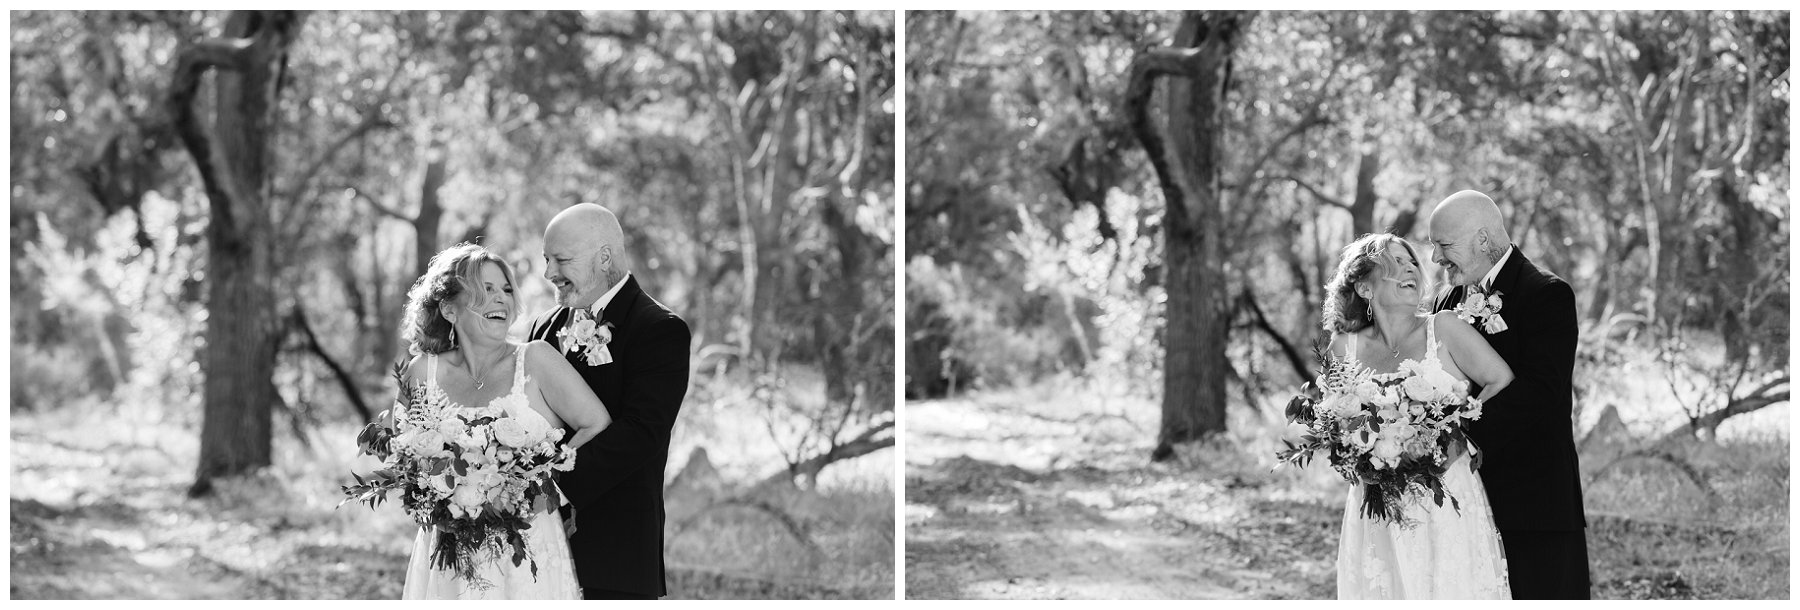 wedding photography bushland